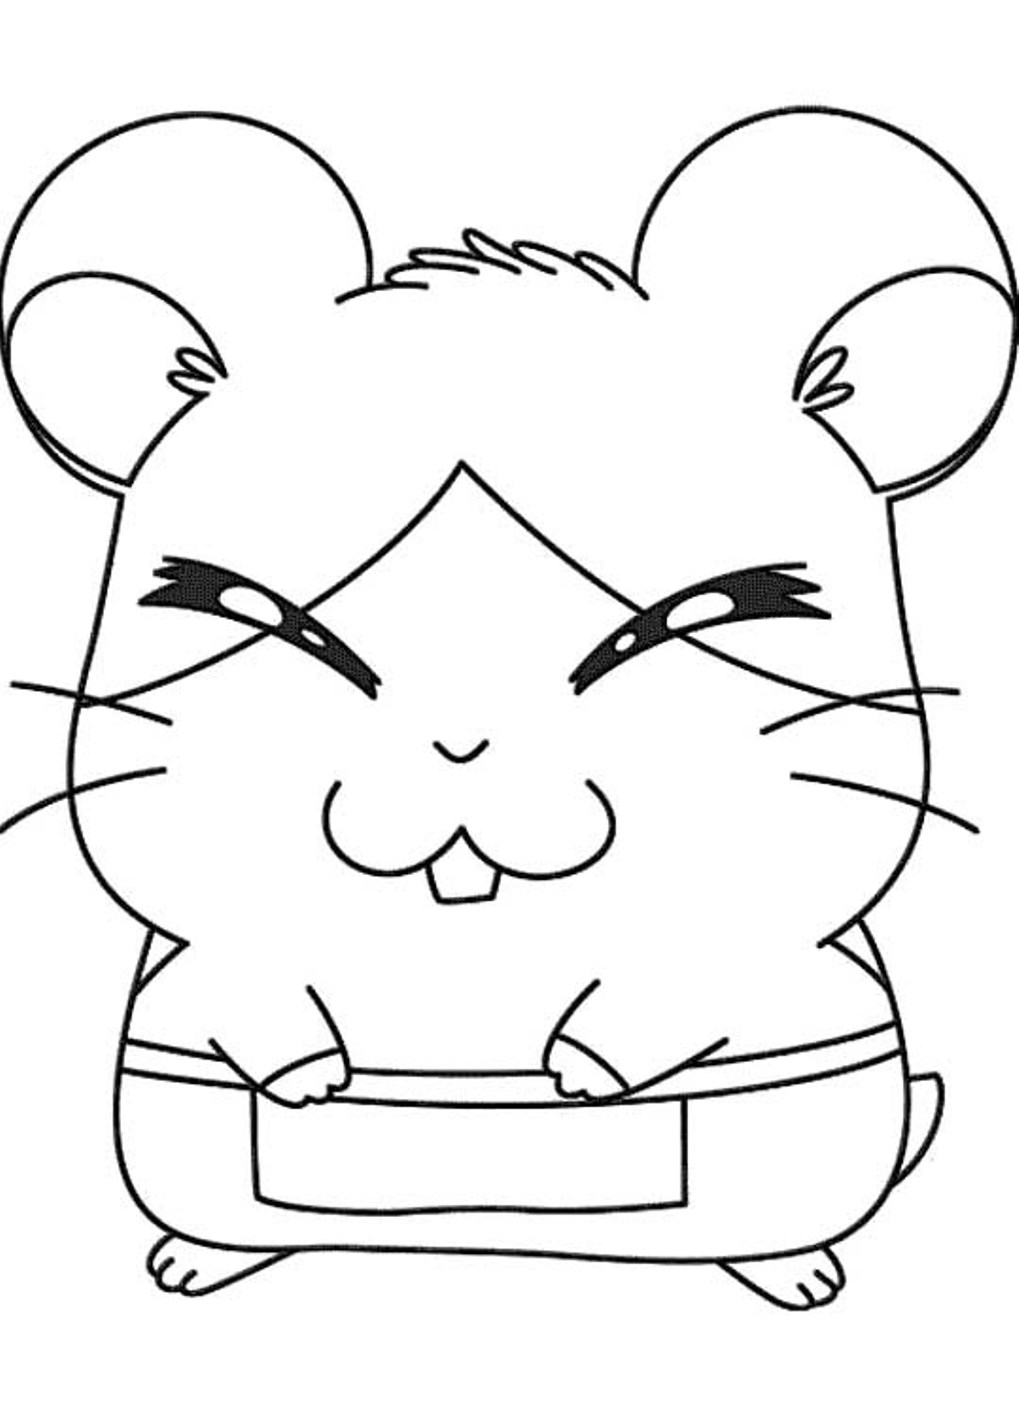 Hamtaro coloring pages to download